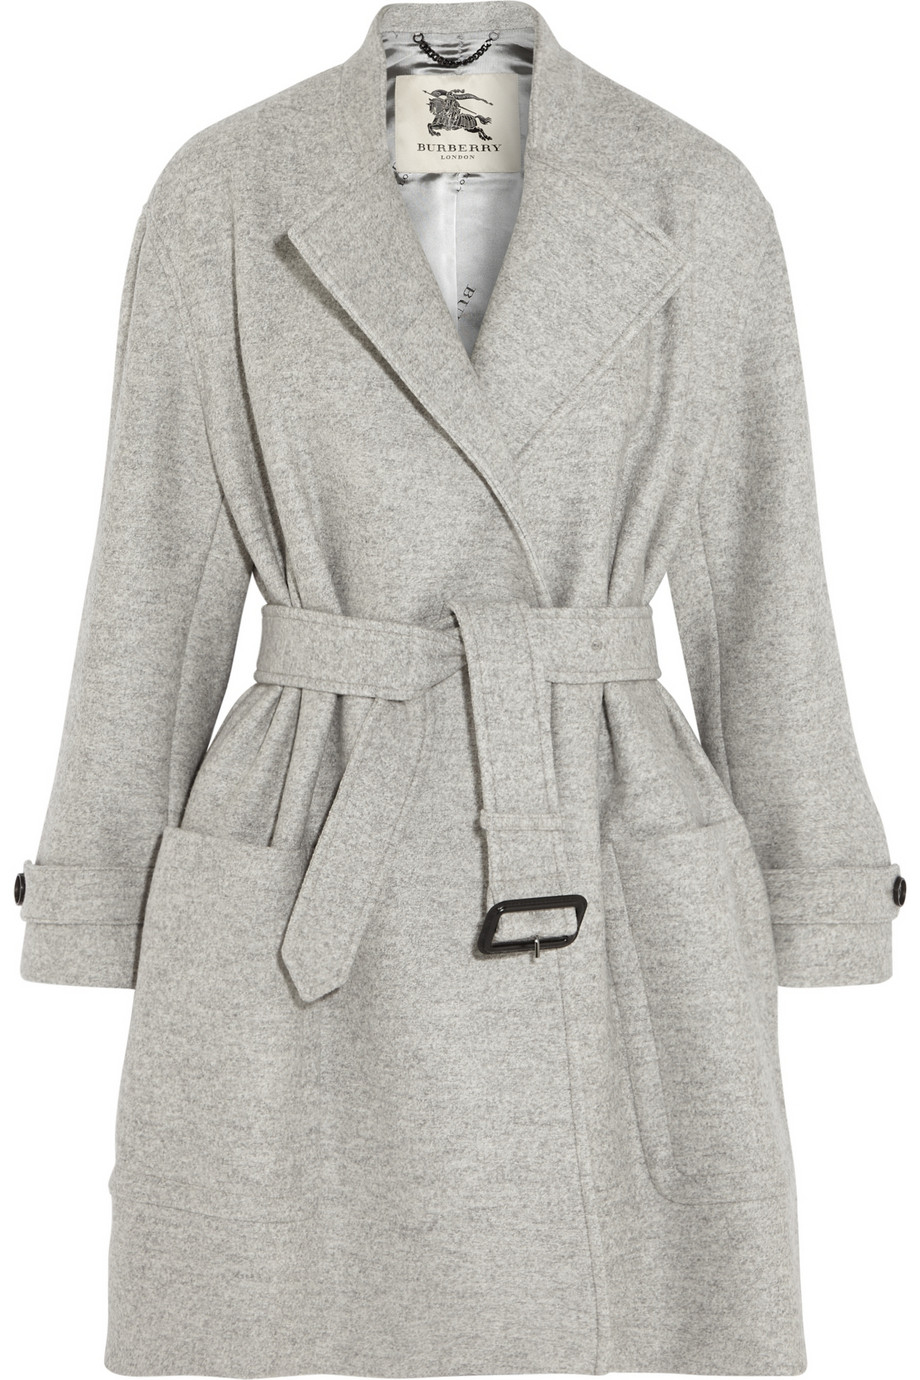 Burberry London Belted Wool Coat in Gray